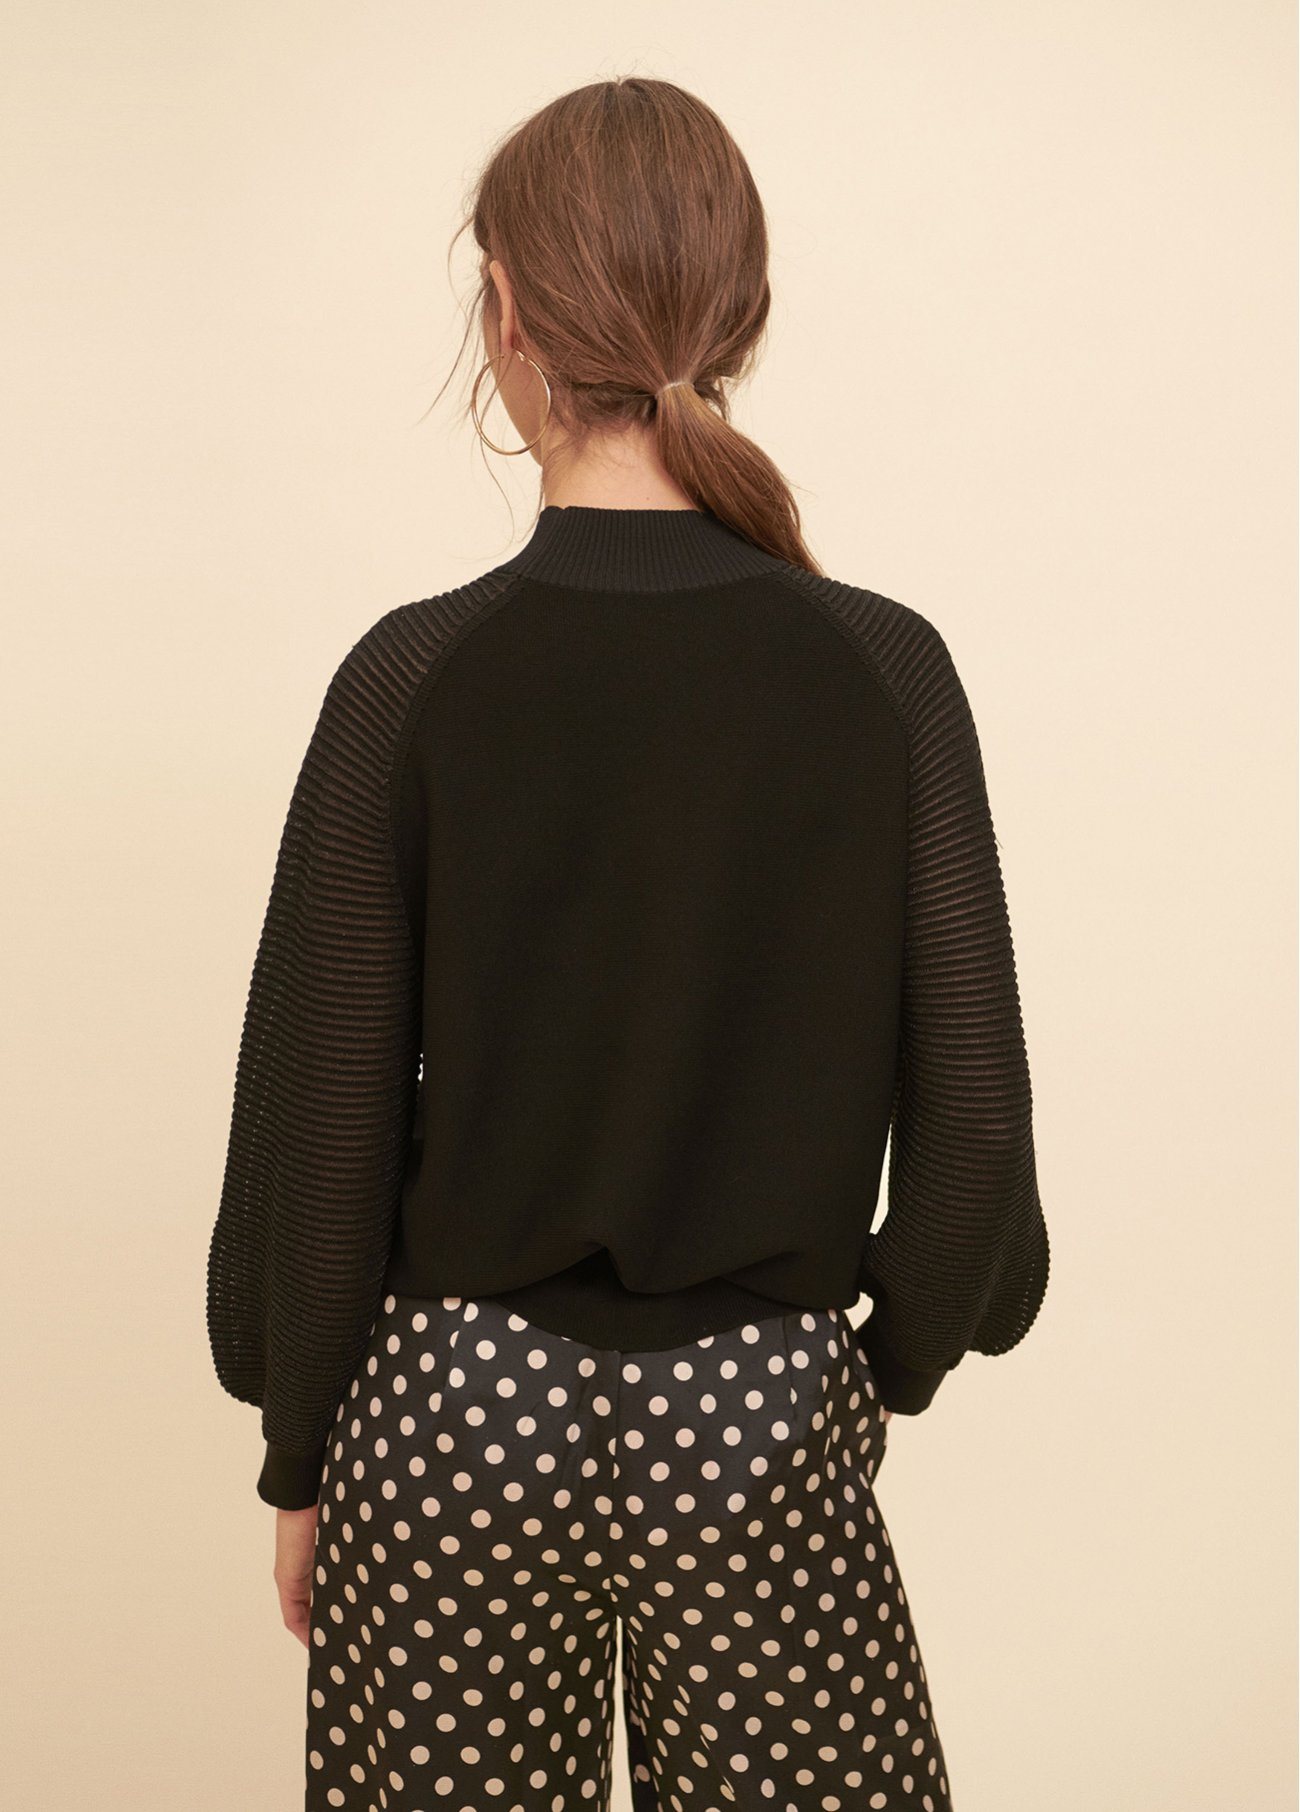 Pull over with puffy sleeves deco